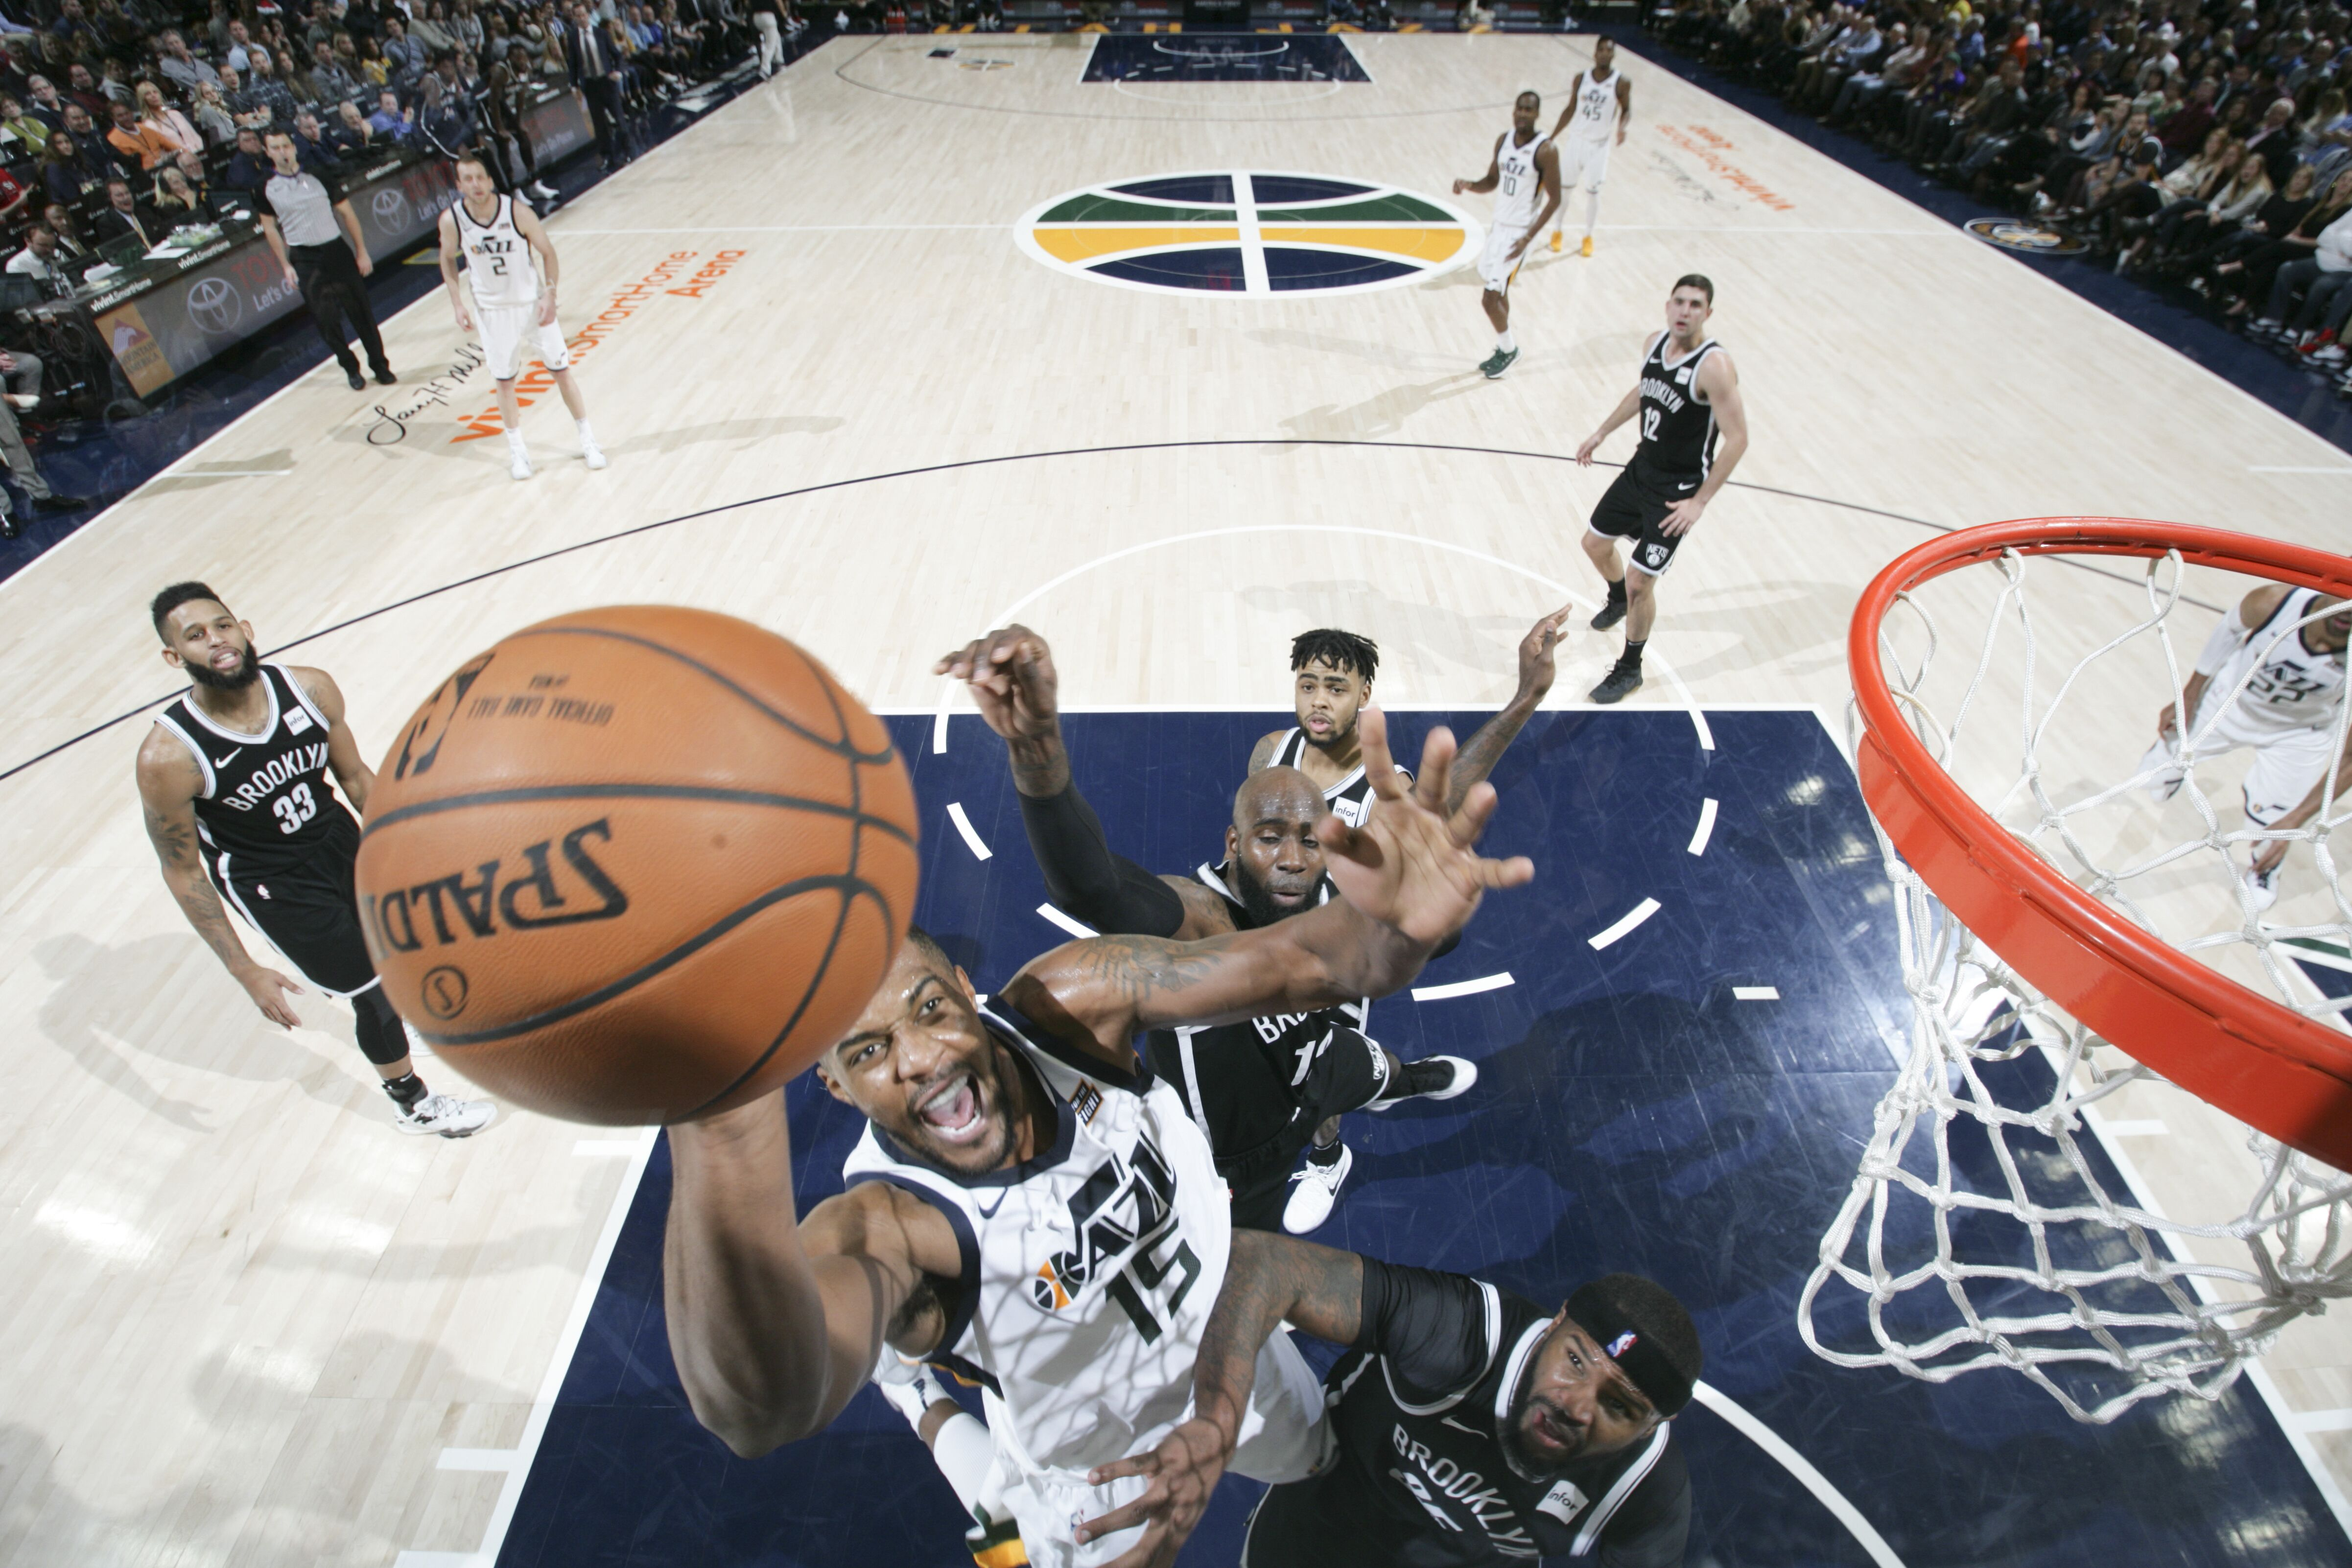 873086894-brooklyn-nets-v-utah-jazz.jpg